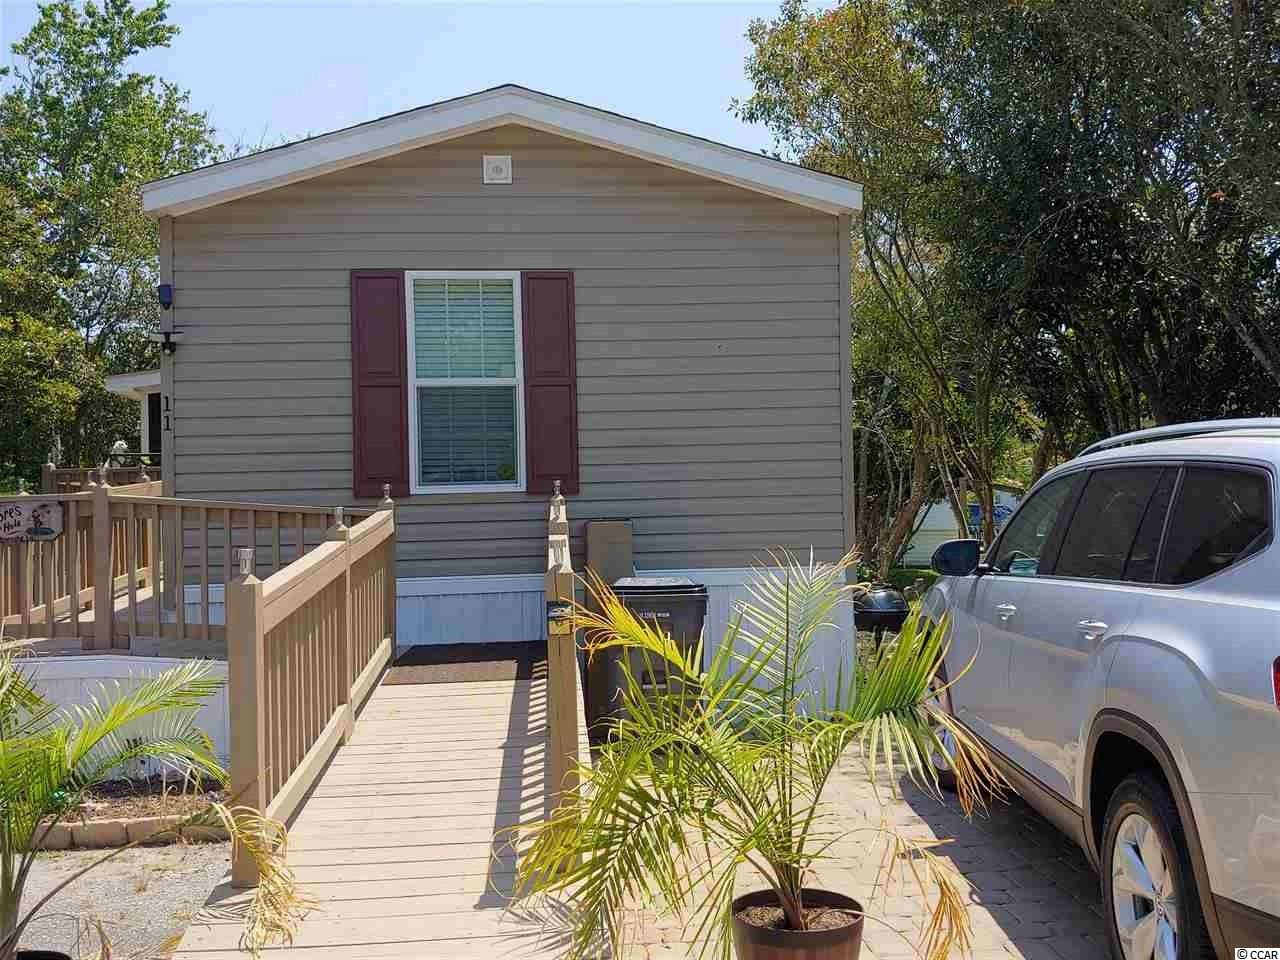 Like new 2017 Destiny single wide in the popular Garden City's Windjammer Village is now ready for your view. Only 1.3 miles from our beach, this 3 bed 2 bath gorgeous home features 8 foot ceilings and a large screened in porch at the entrance of the property.  A wheelchair ramp makes for easy accessibility to the porch and front door.  The shed on this property does convey for all of your storage needs and the gold cart inside is negotiable!  Your new beach home is already fenced in and has beautiful landscaping and mature trees.  Crown molding and chair rail are a few of the upgrades to this newer home. Come and enjoy this worry free home.  Move right in!  Vinyl plank flooring throughout!  It's beautiful.  Make it yours.